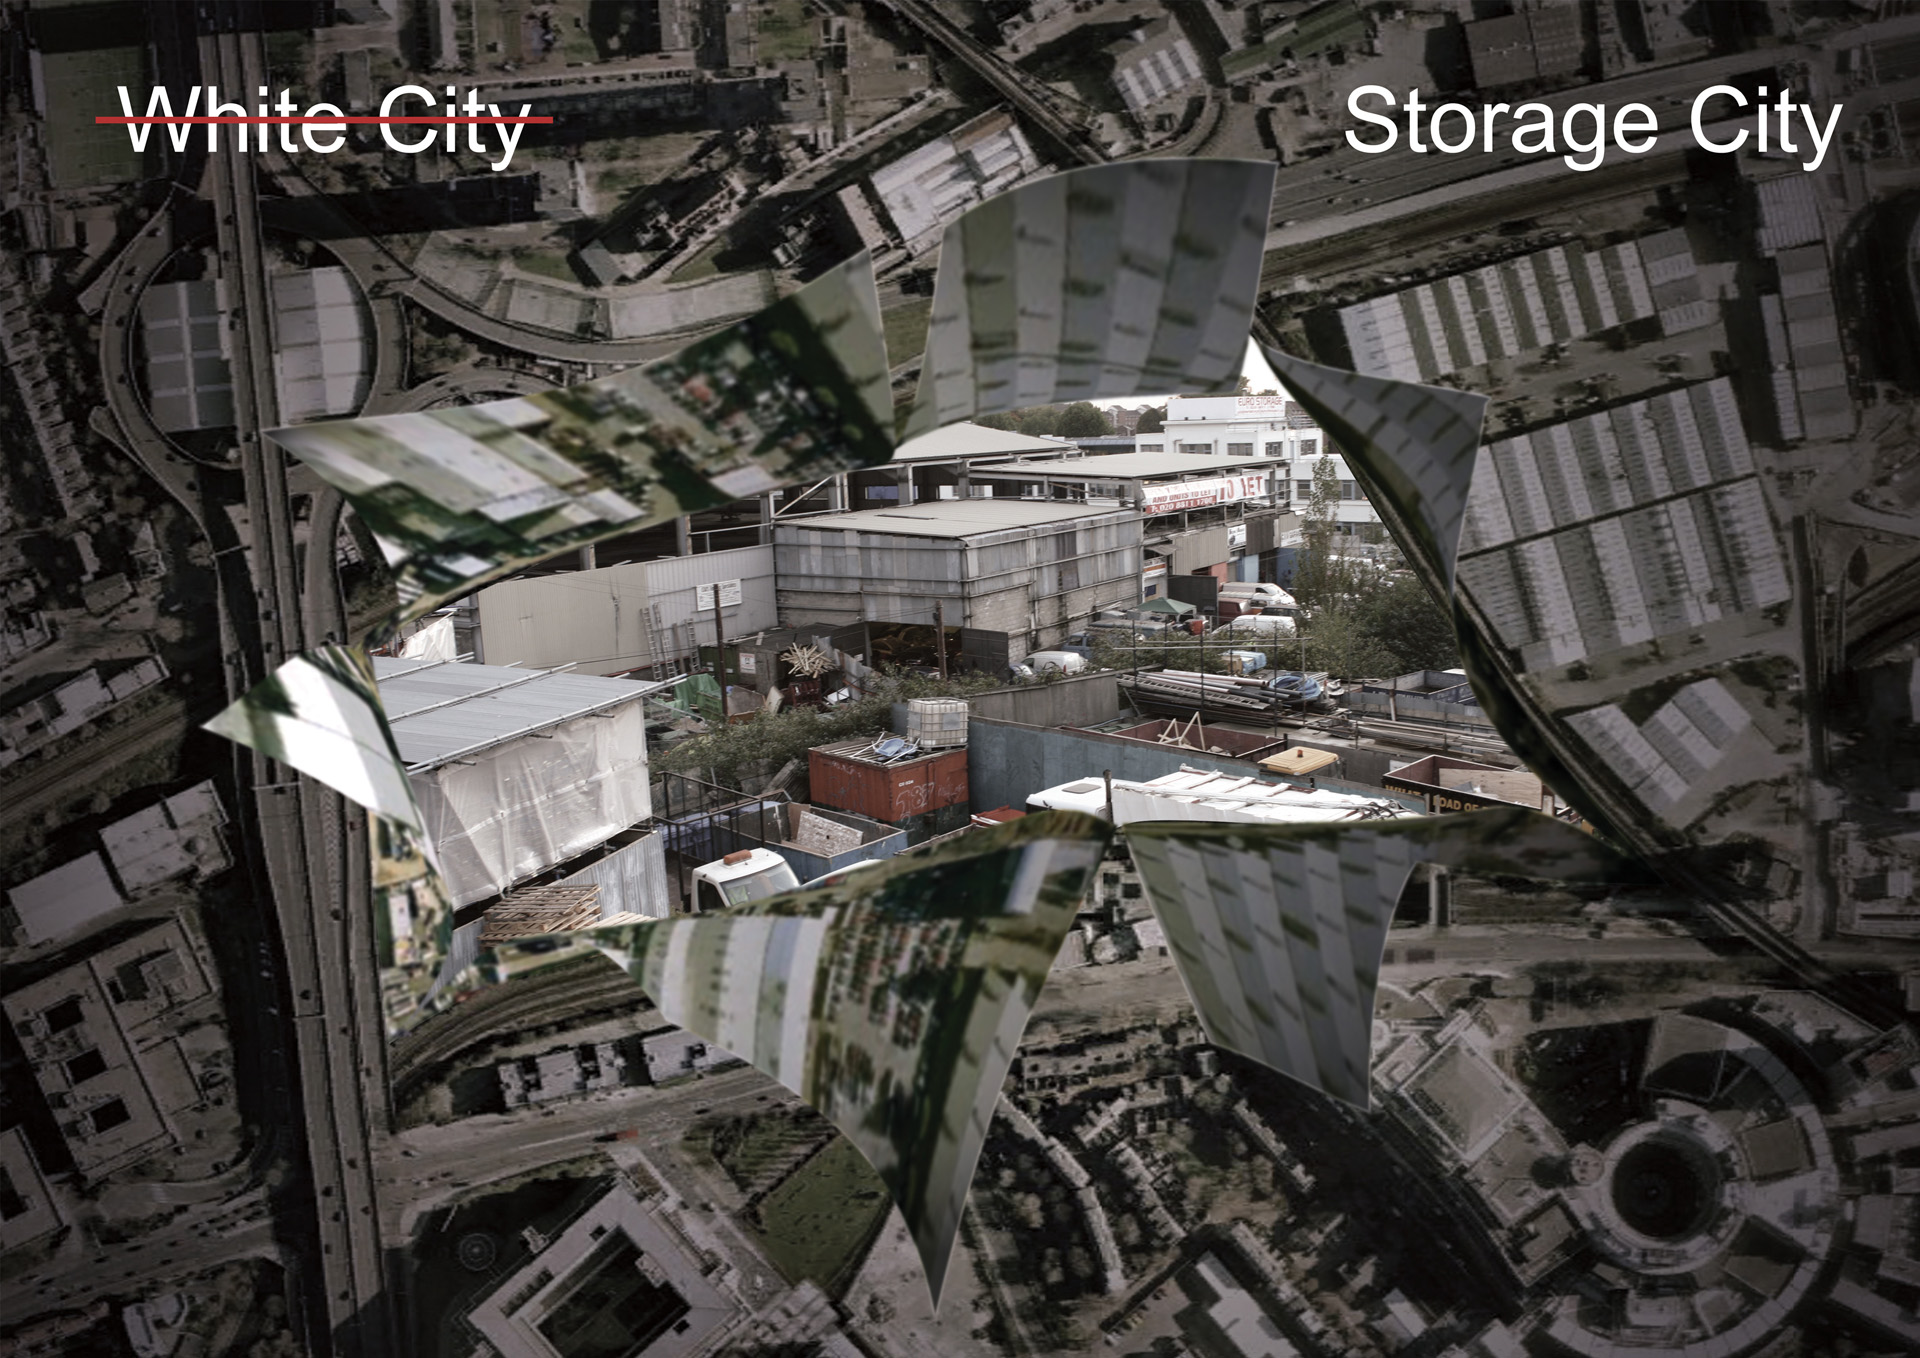 projects review diploma yongbum kim storage cityclick image to view at full size